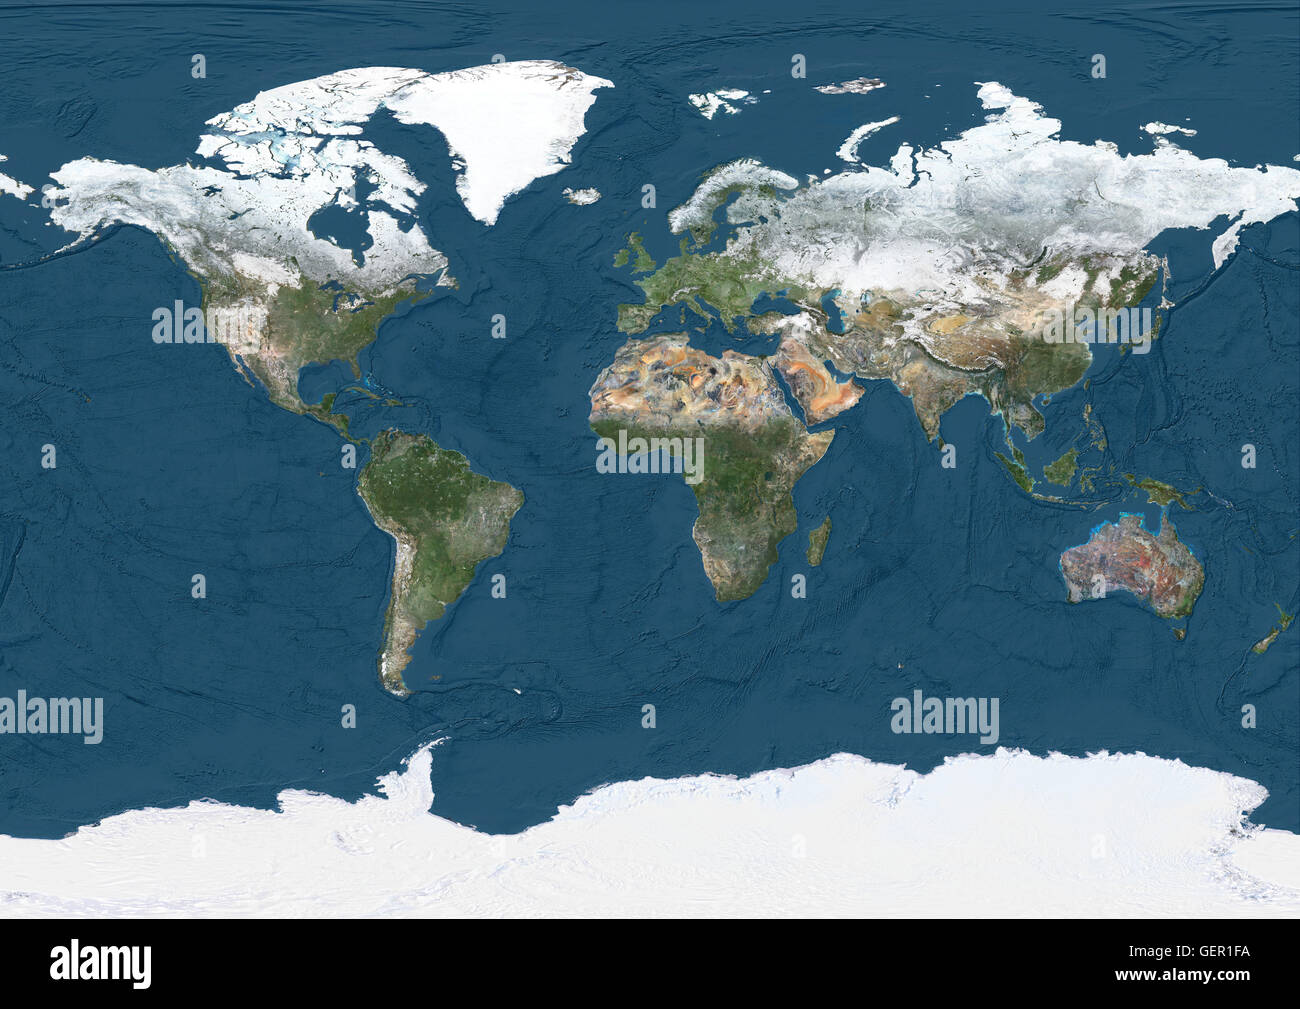 World Satellite Map In Winter With Partial Snow Cover And Showing - Map showing ocean depths